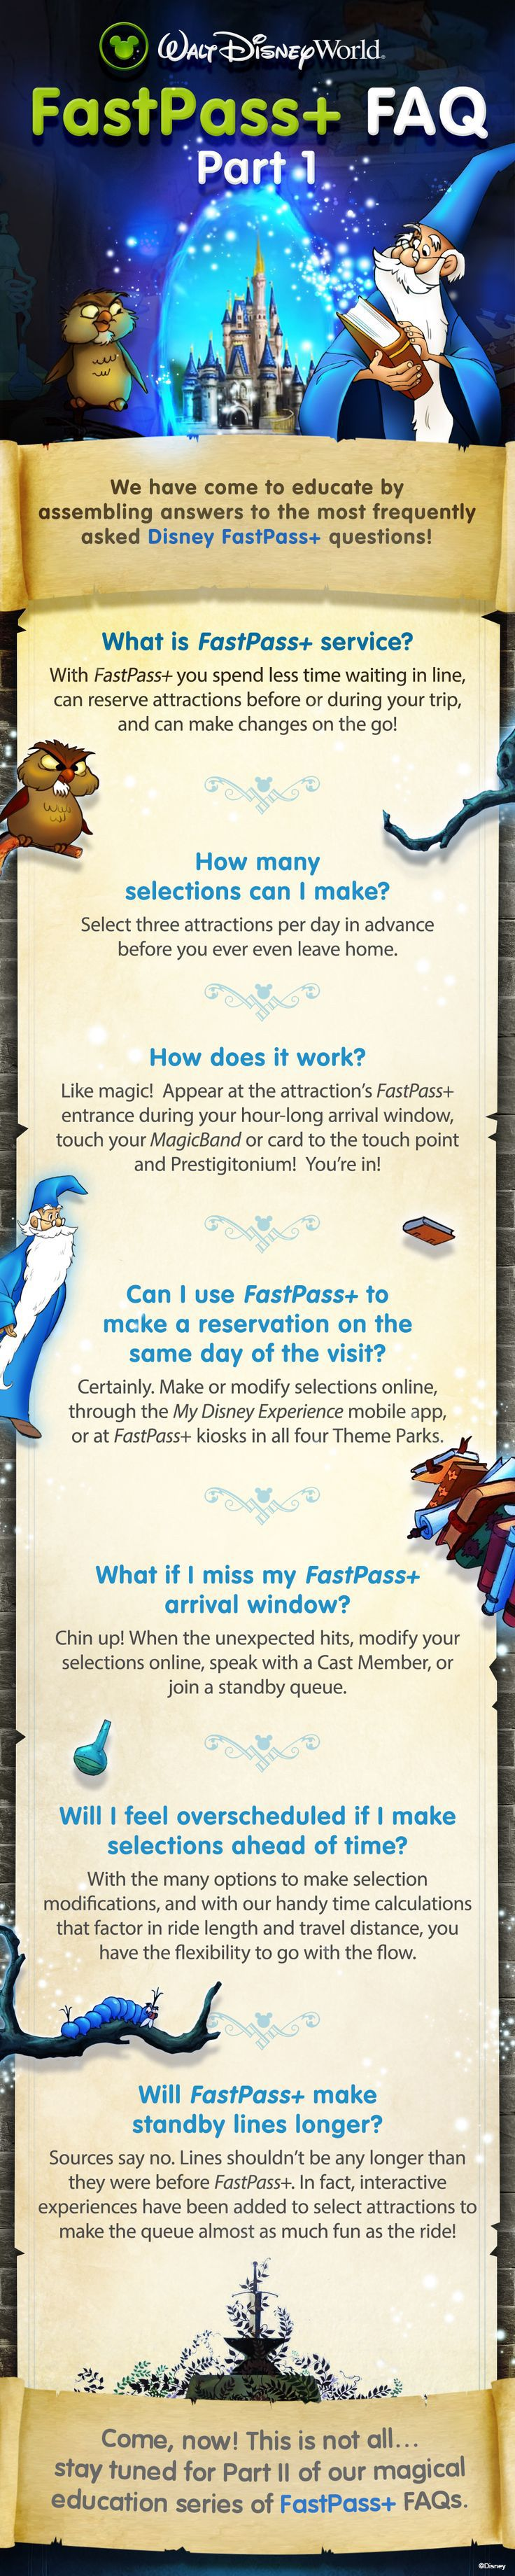 Curious about how to take advantage of FastPass+ during a trip to the Walt Disney World Resort? Here are the answers to some of the most frequently asked FastPass+ questions! The best tool you can have in your tool box for planning a Disney vacation is your 3D Travel Specialist! Get your free quote today, we would love to help you plan the magic! #3DTC